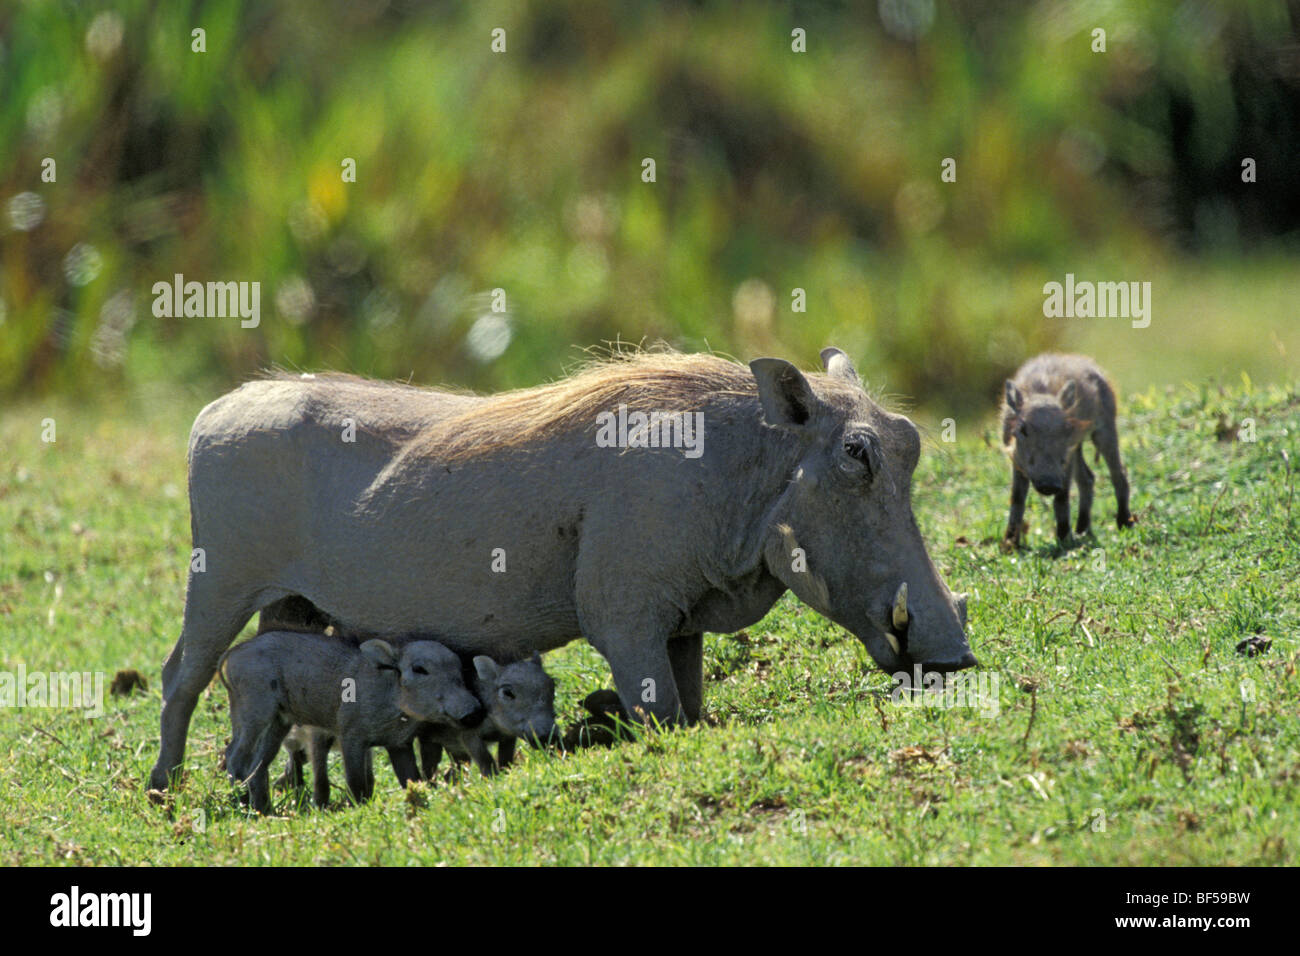 Warthog (Phacochoerus aethiopicus) with piglets, Serengeti, Tanzania, Africa - Stock Image